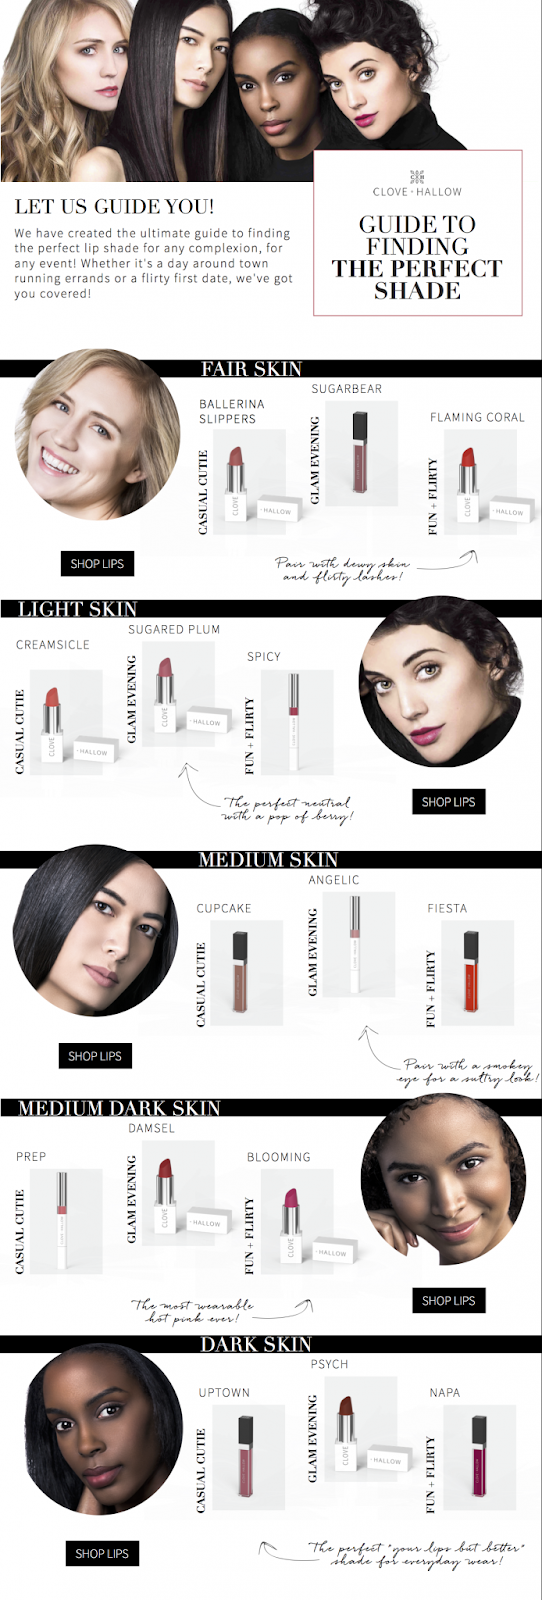 Guide to Finding the Perfect Shade